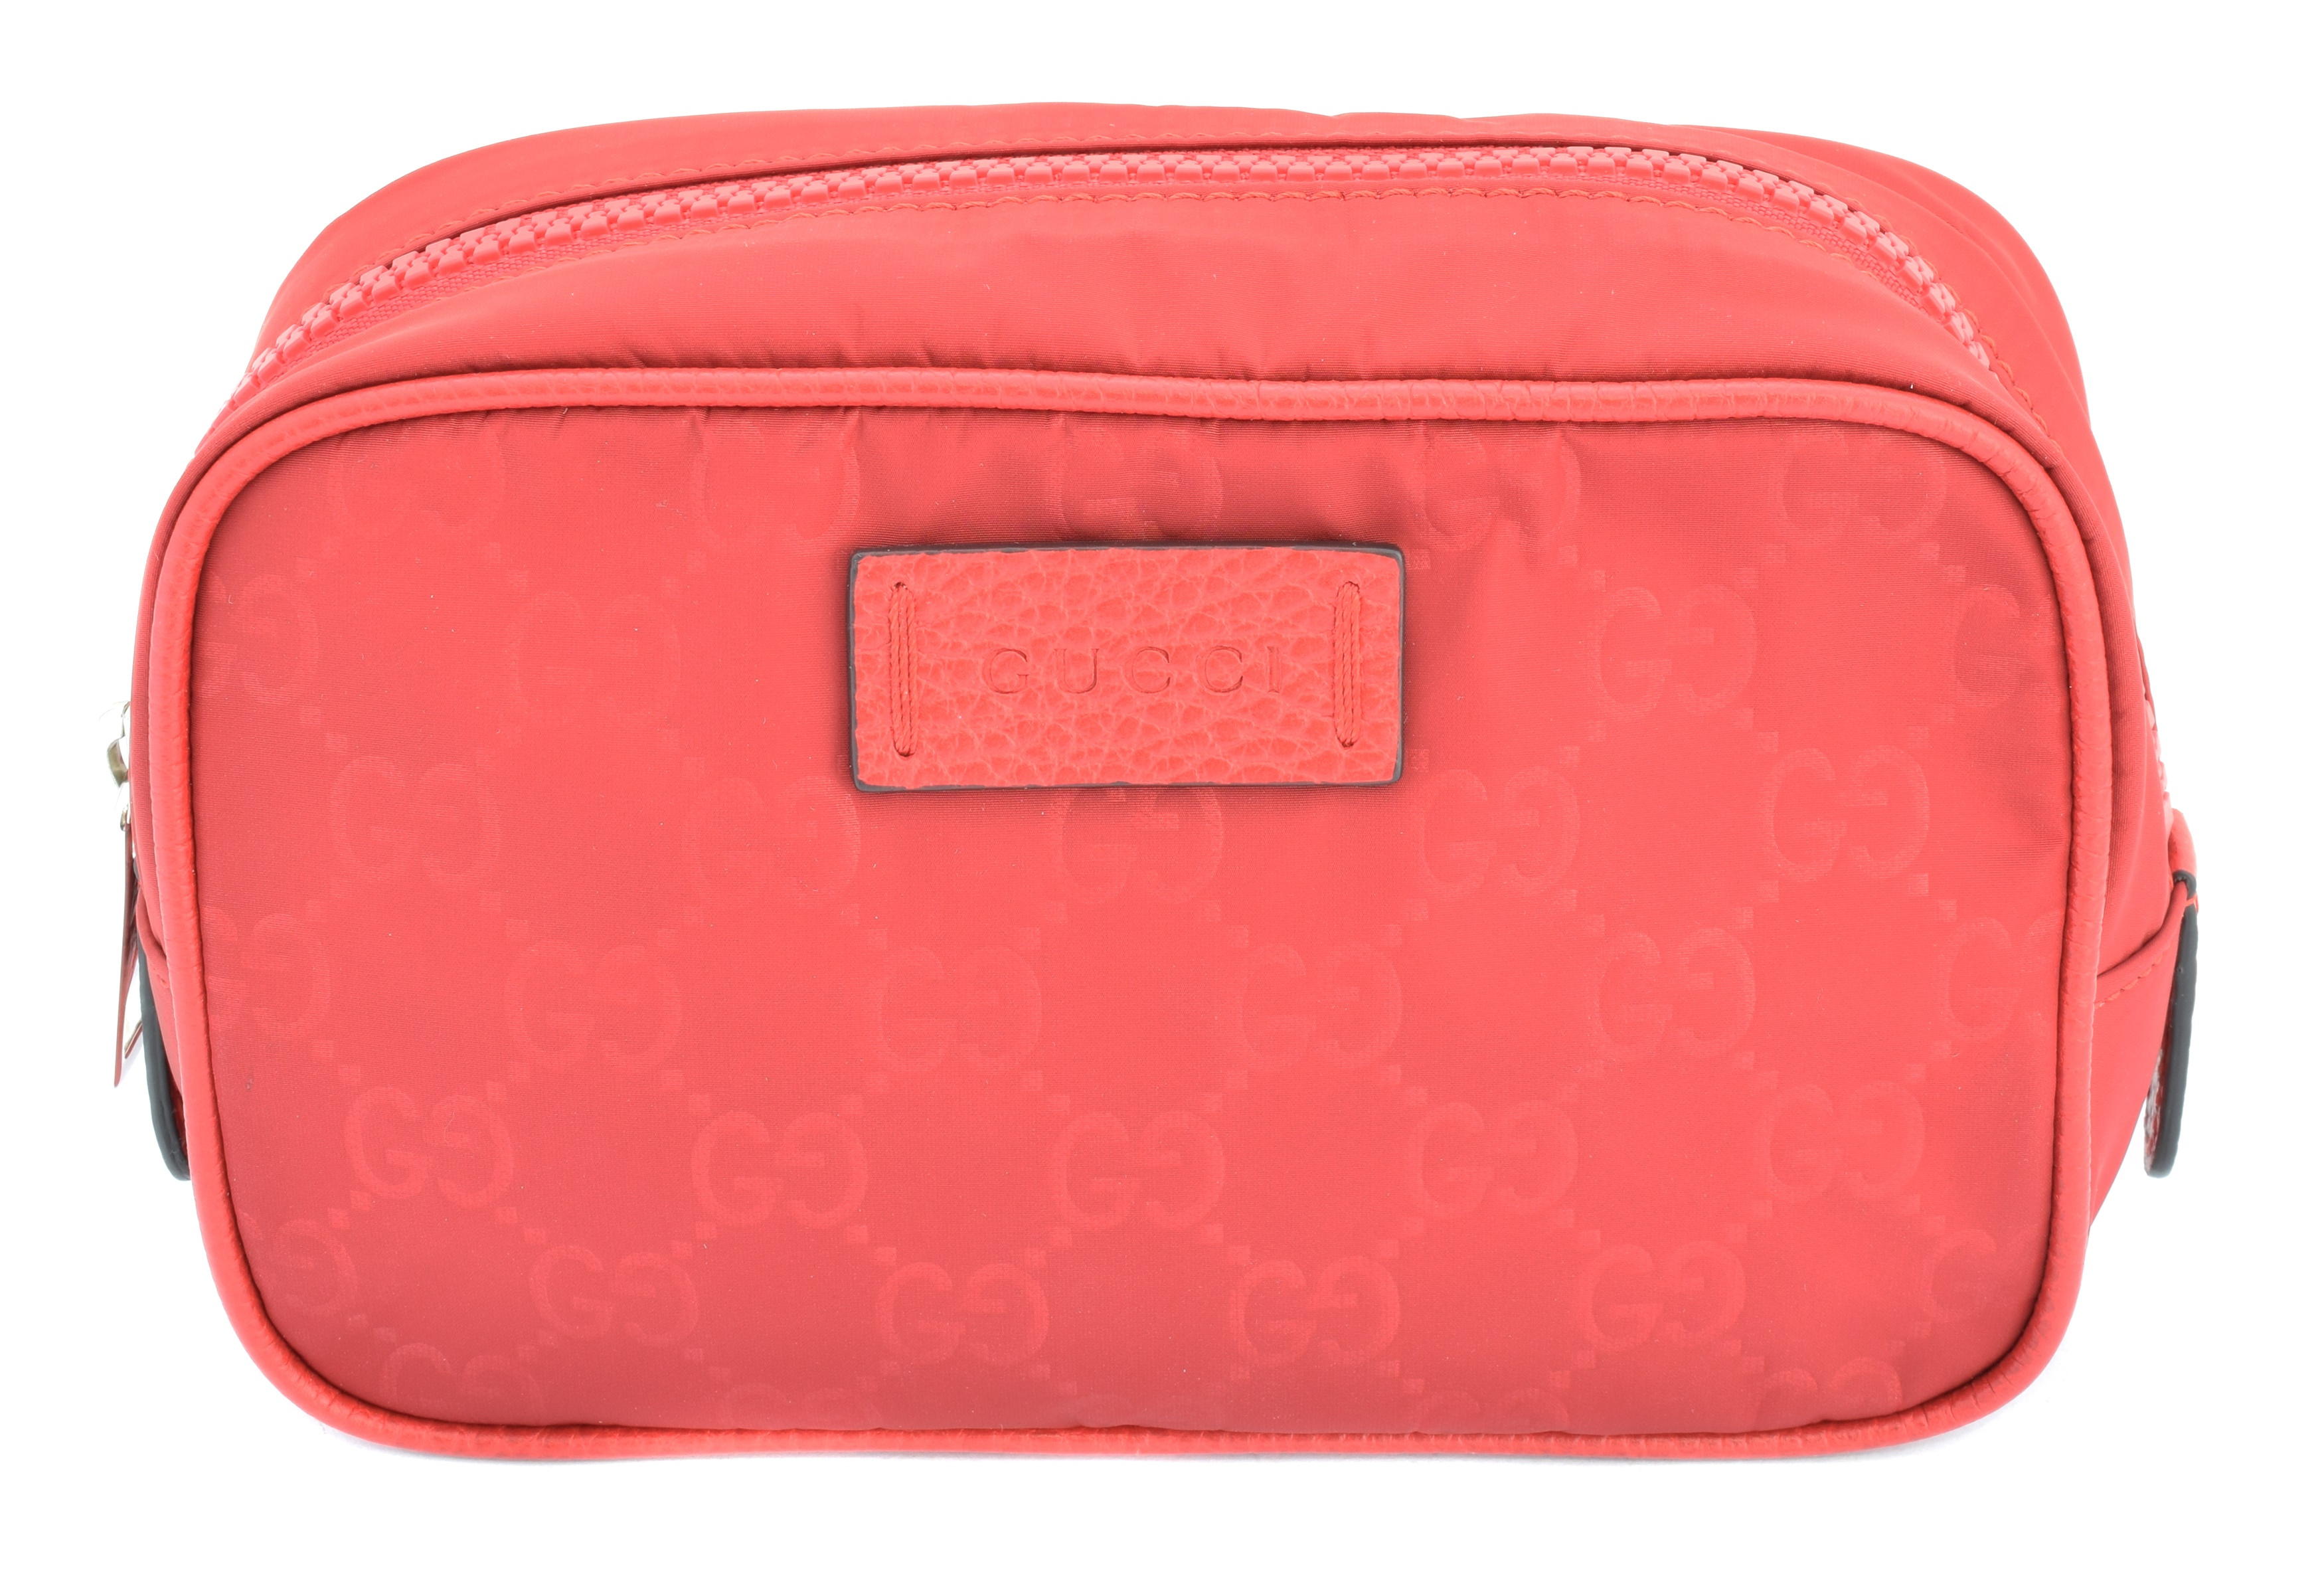 A Gucci cosmetic case pouch,